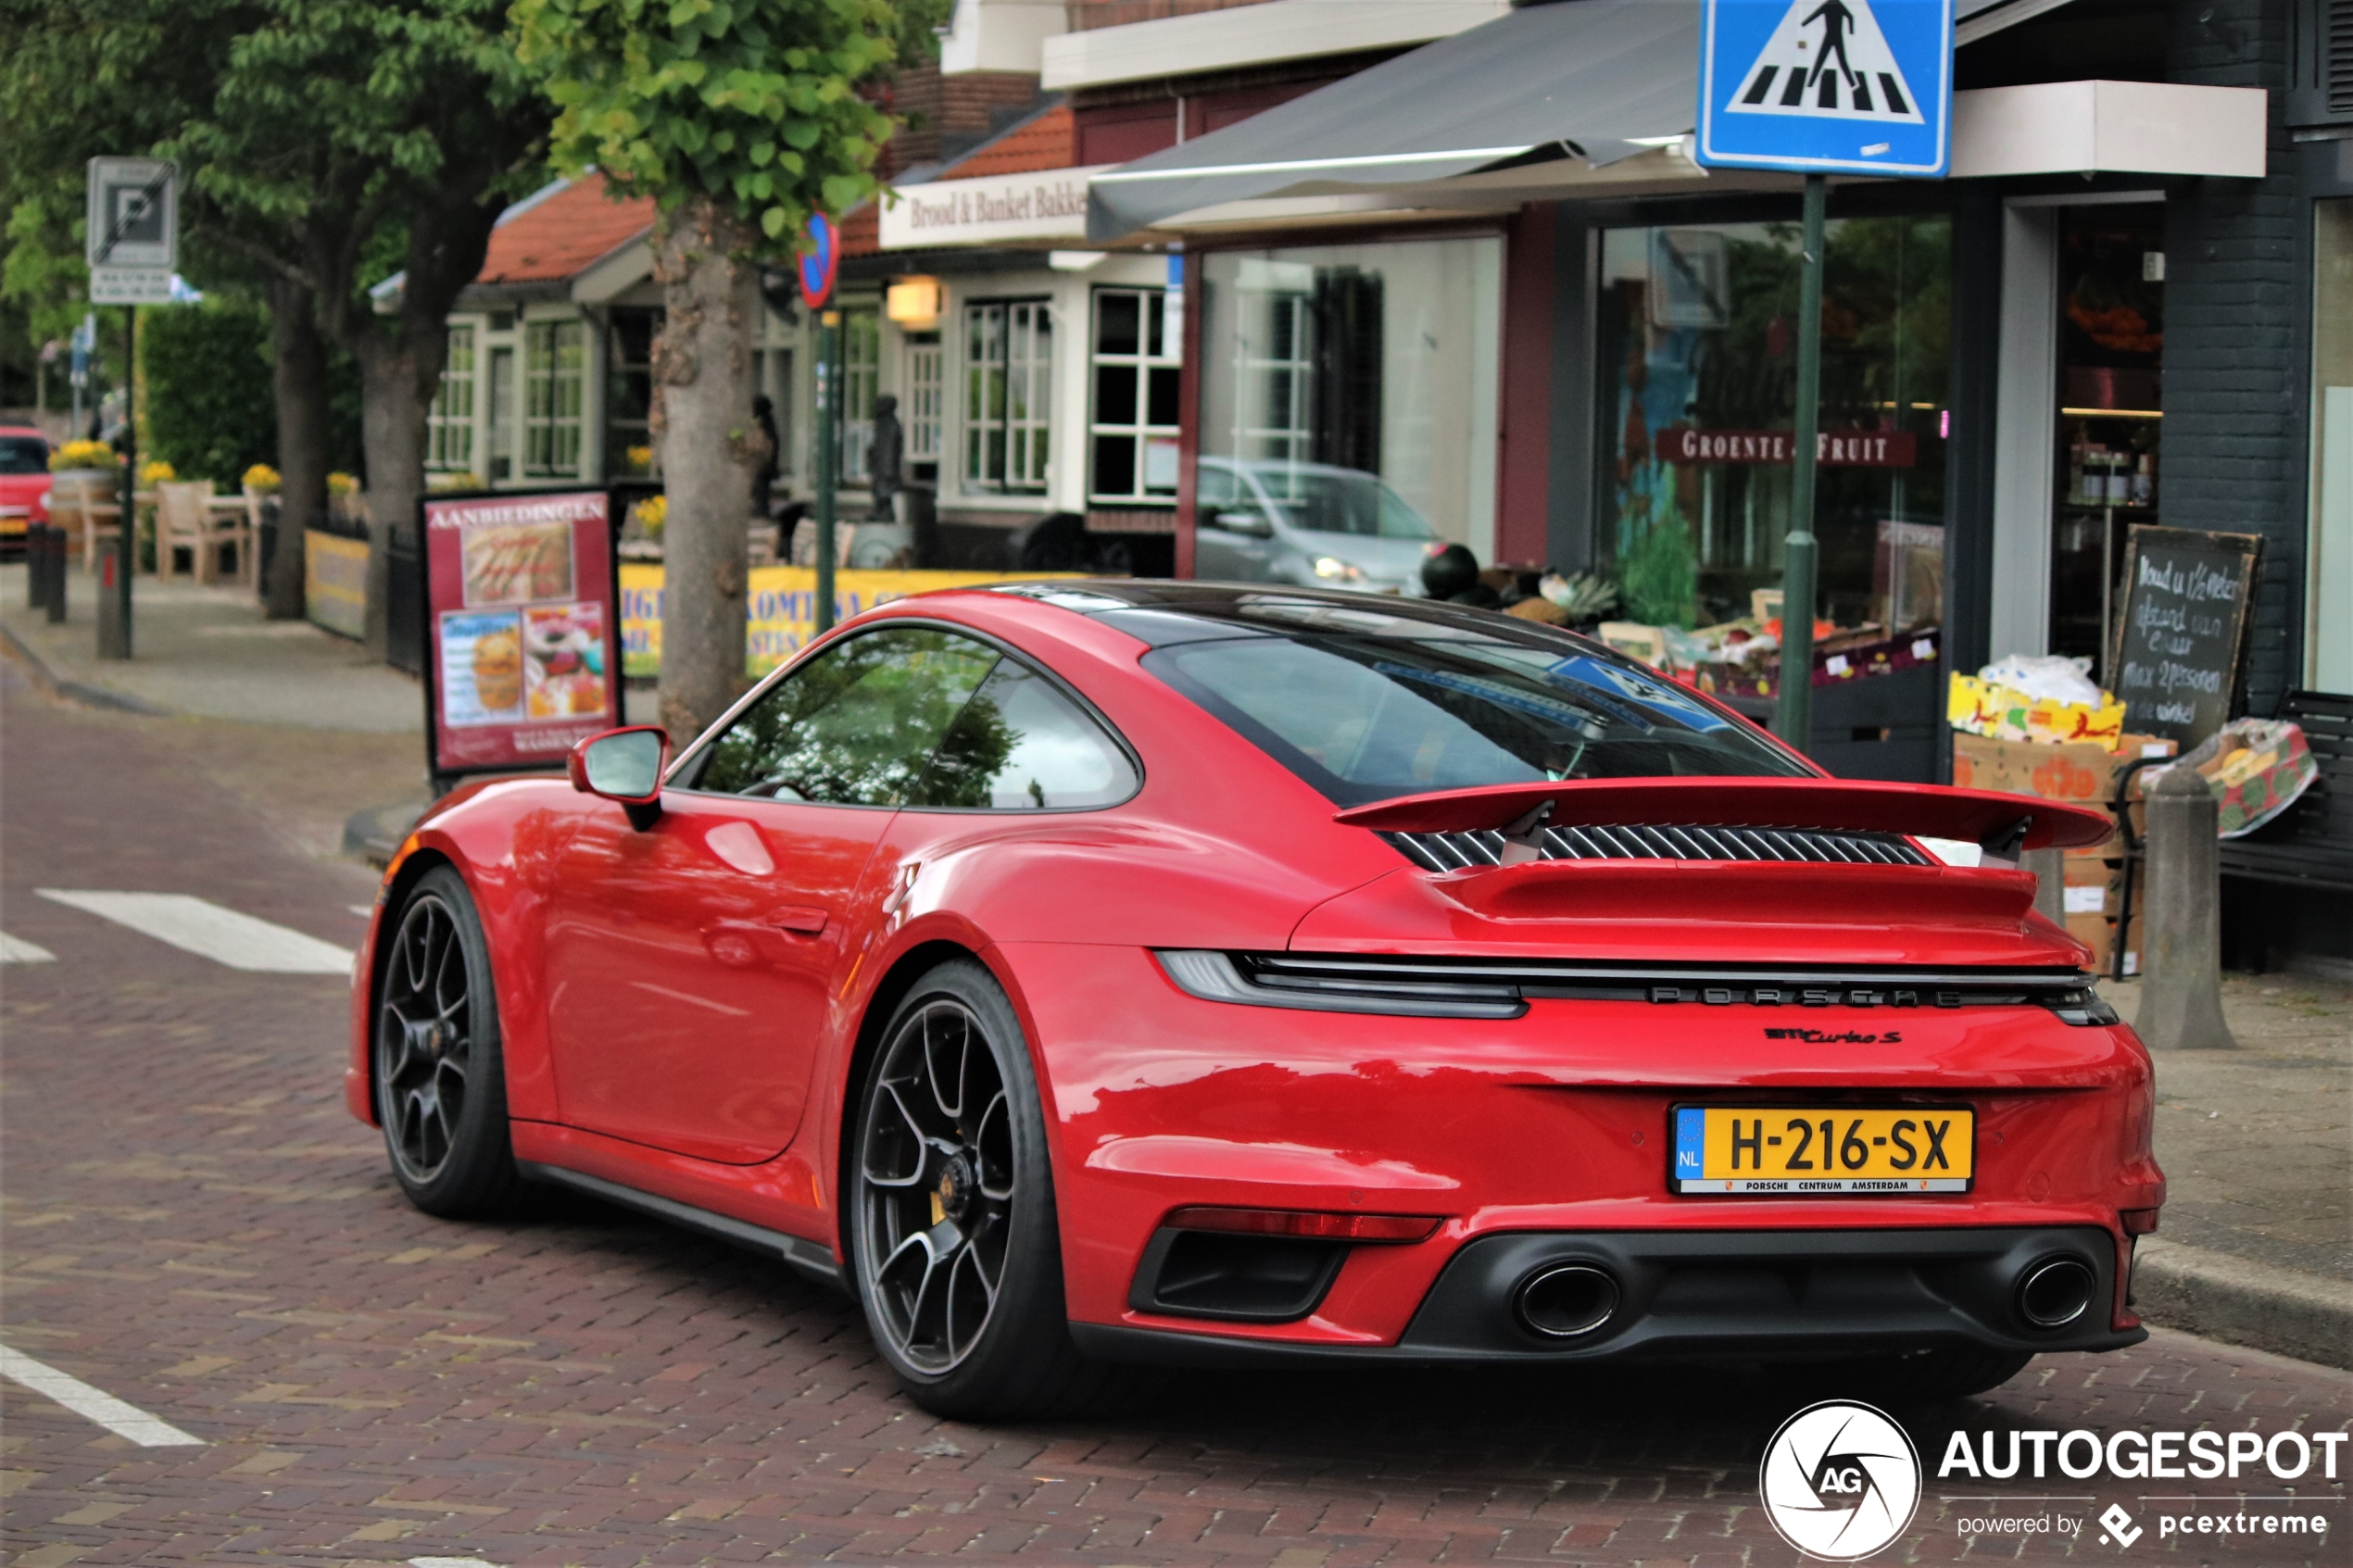 De stormvloed van Porsches 992 Turbo S is nabij